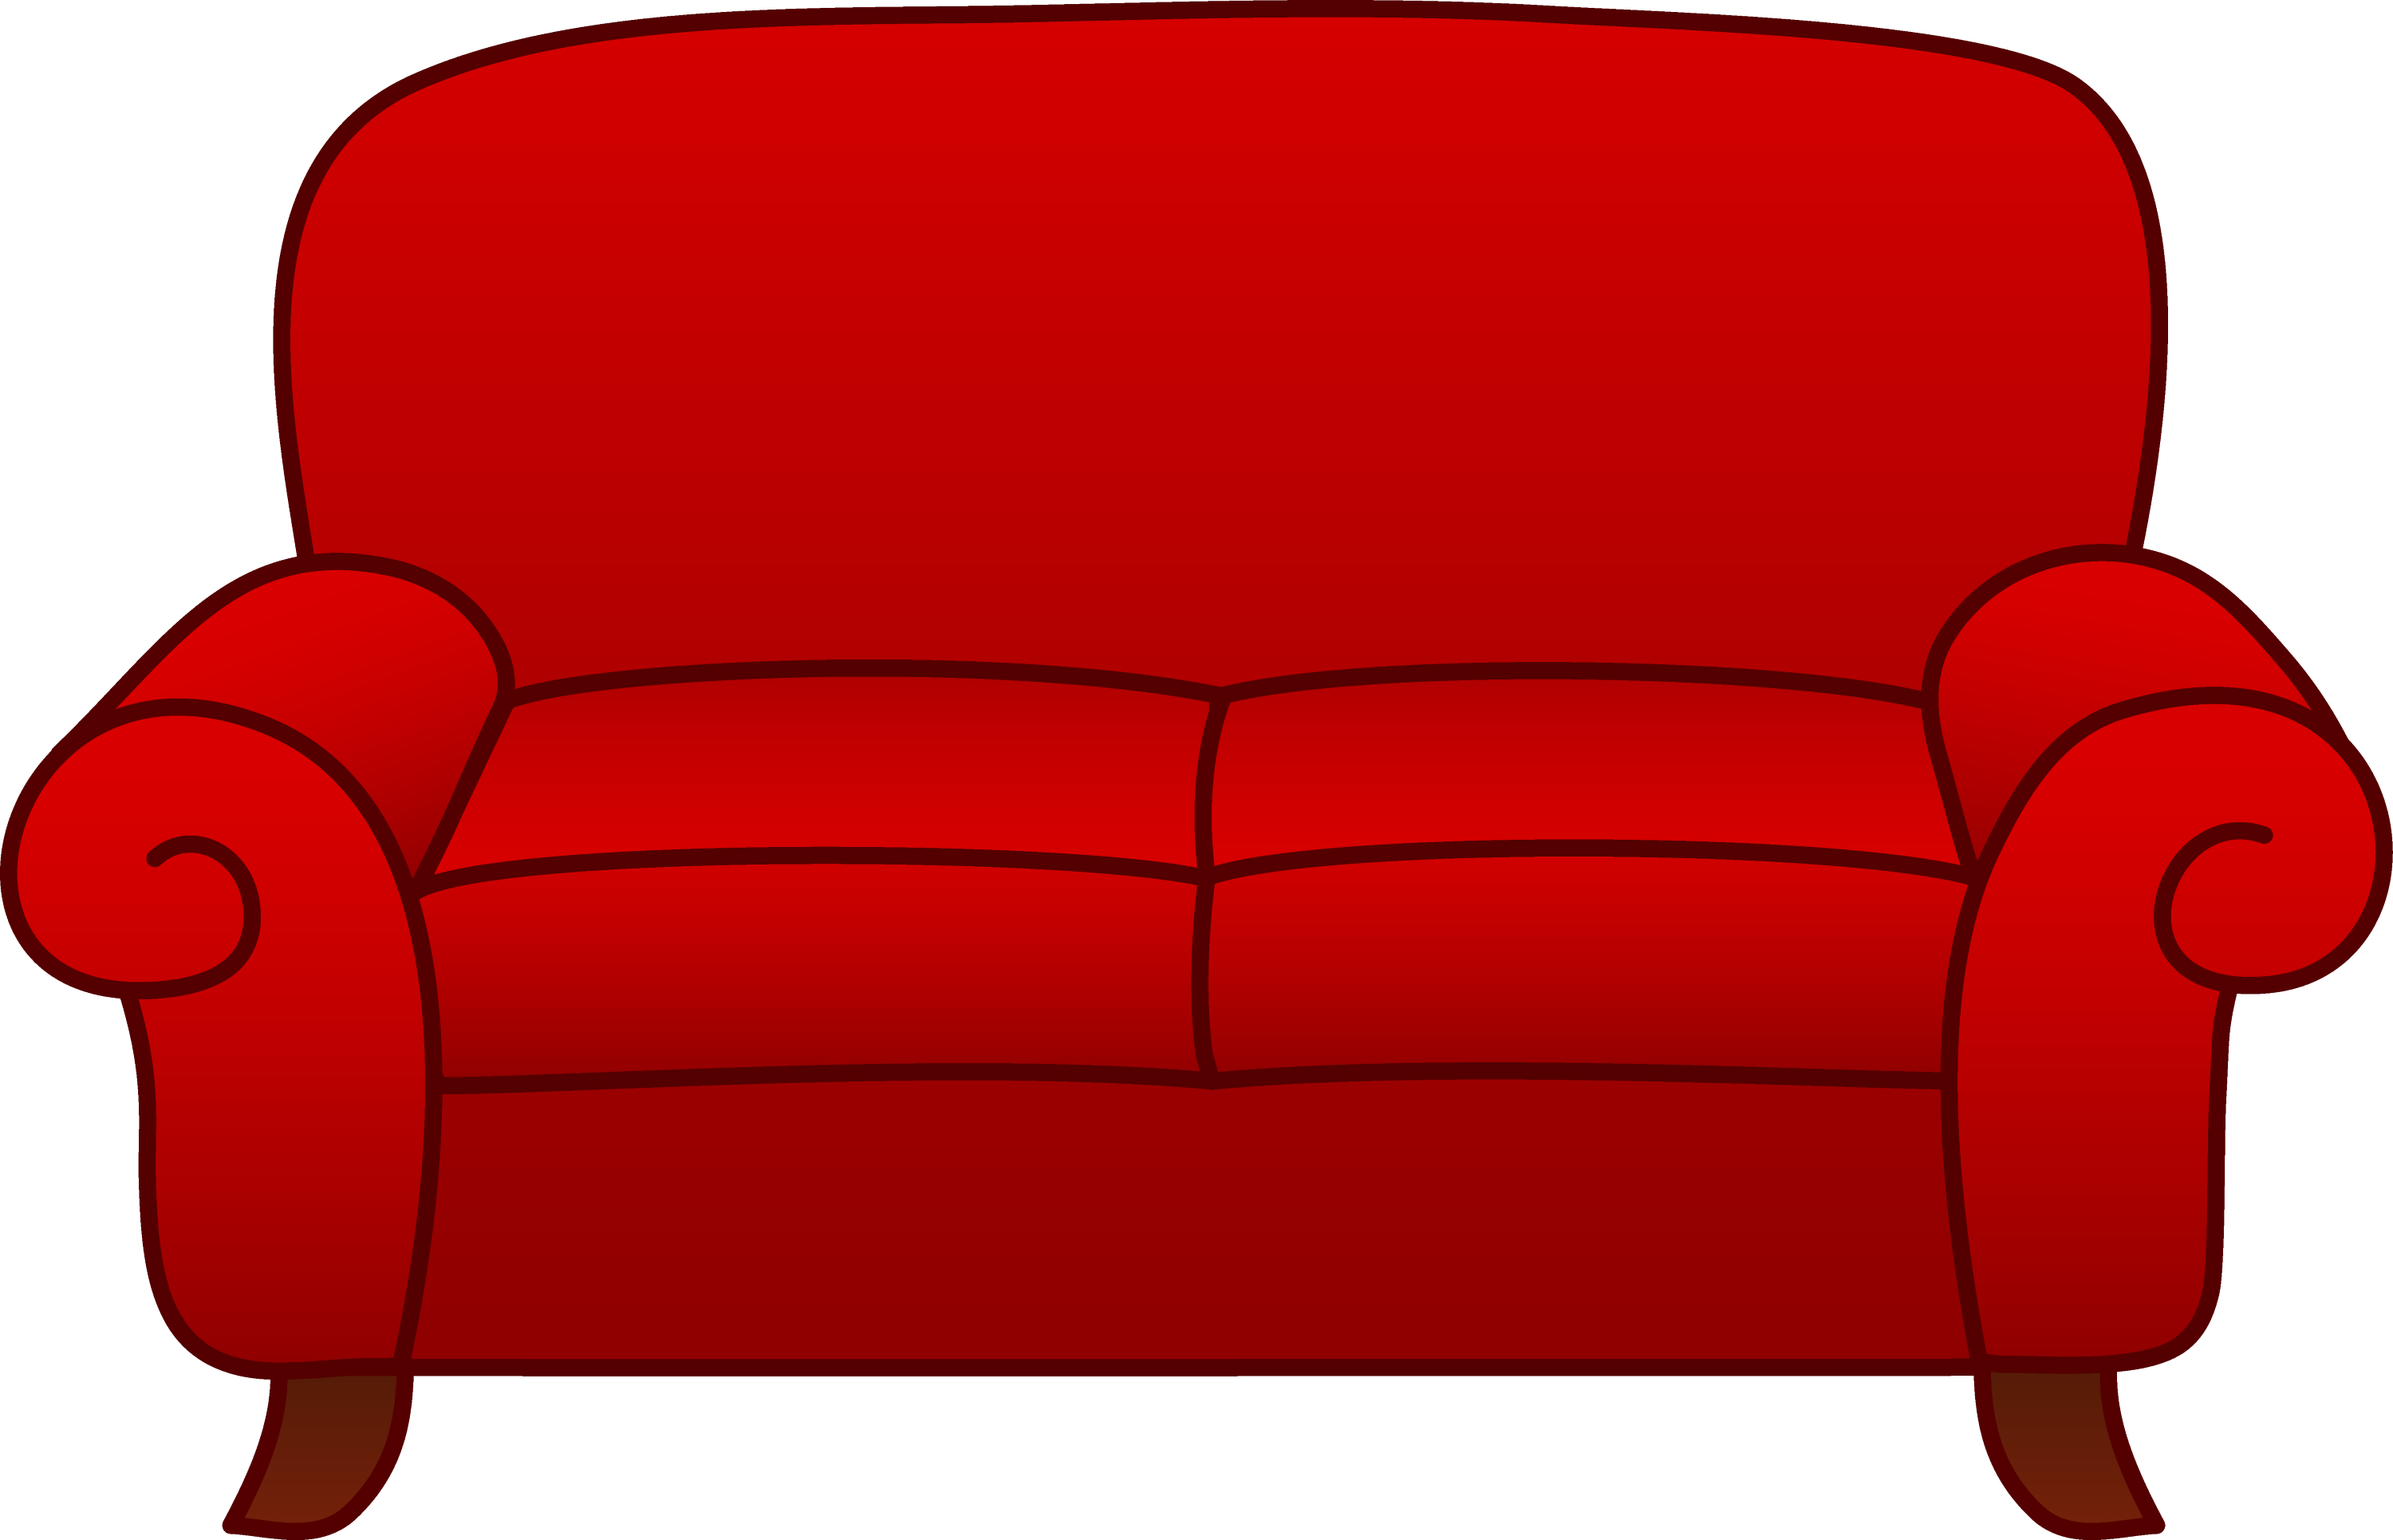 Red Living Room Sofa Free Clip Art